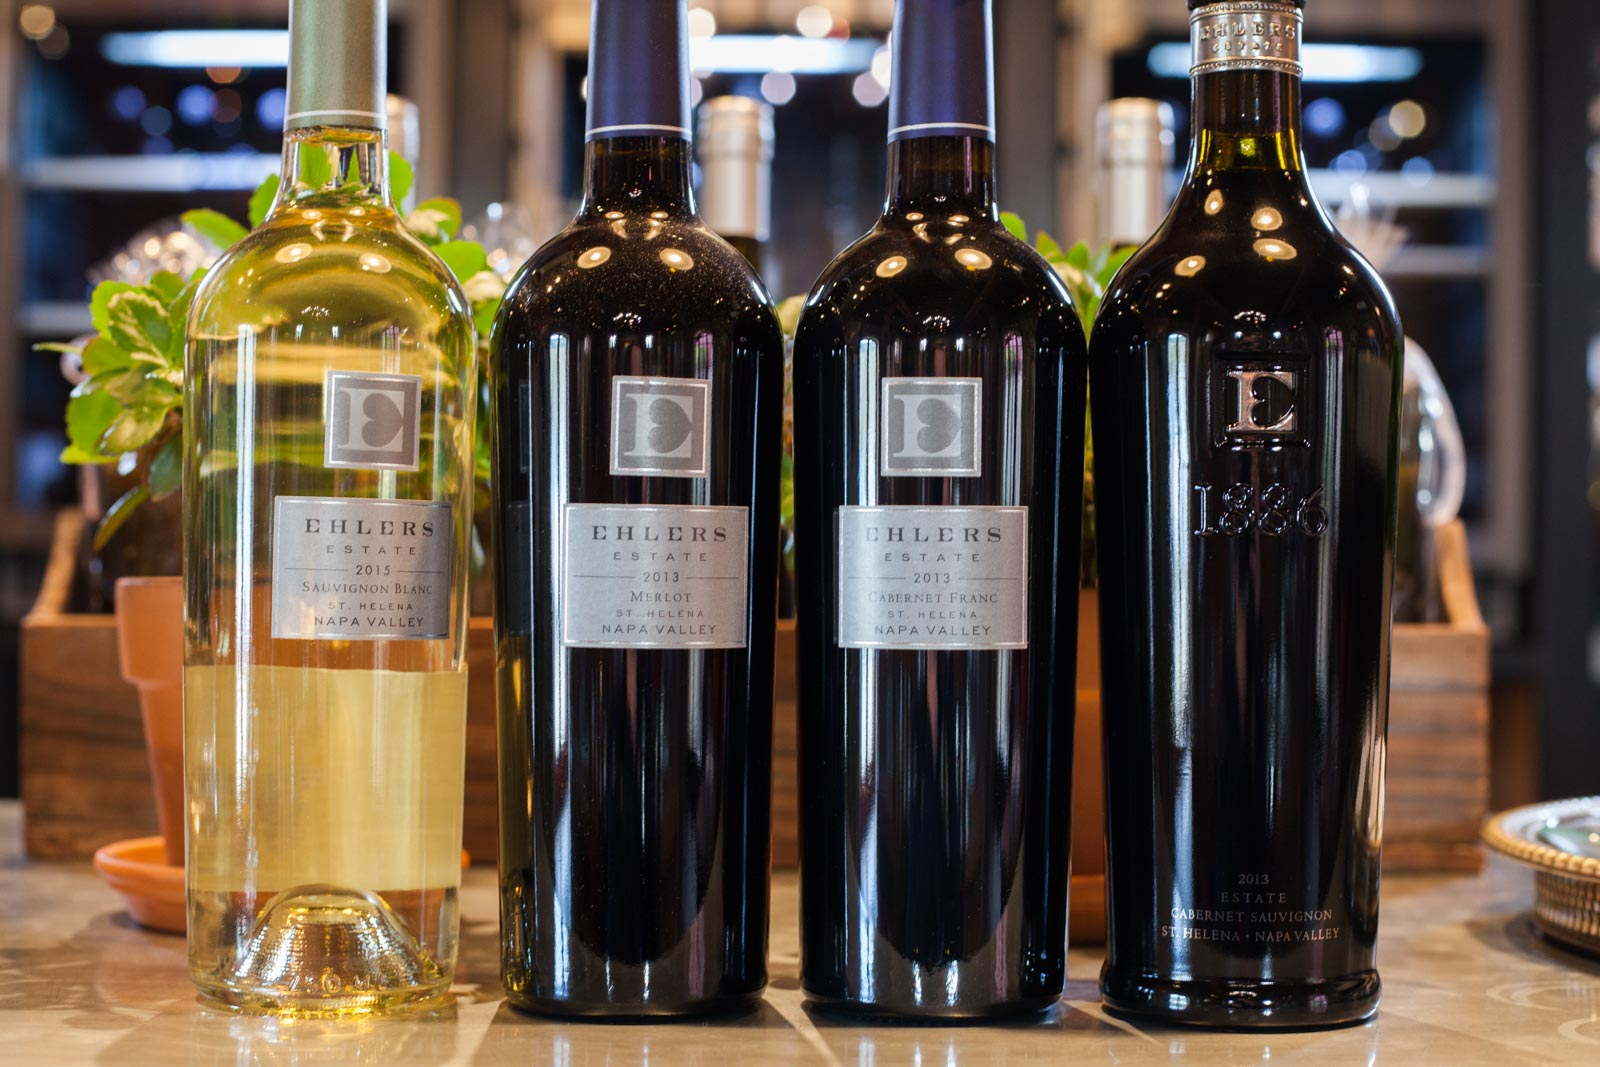 The wines of Ehlers Estate in Napa Valley. ©Kevin Day/Opening a Bottle